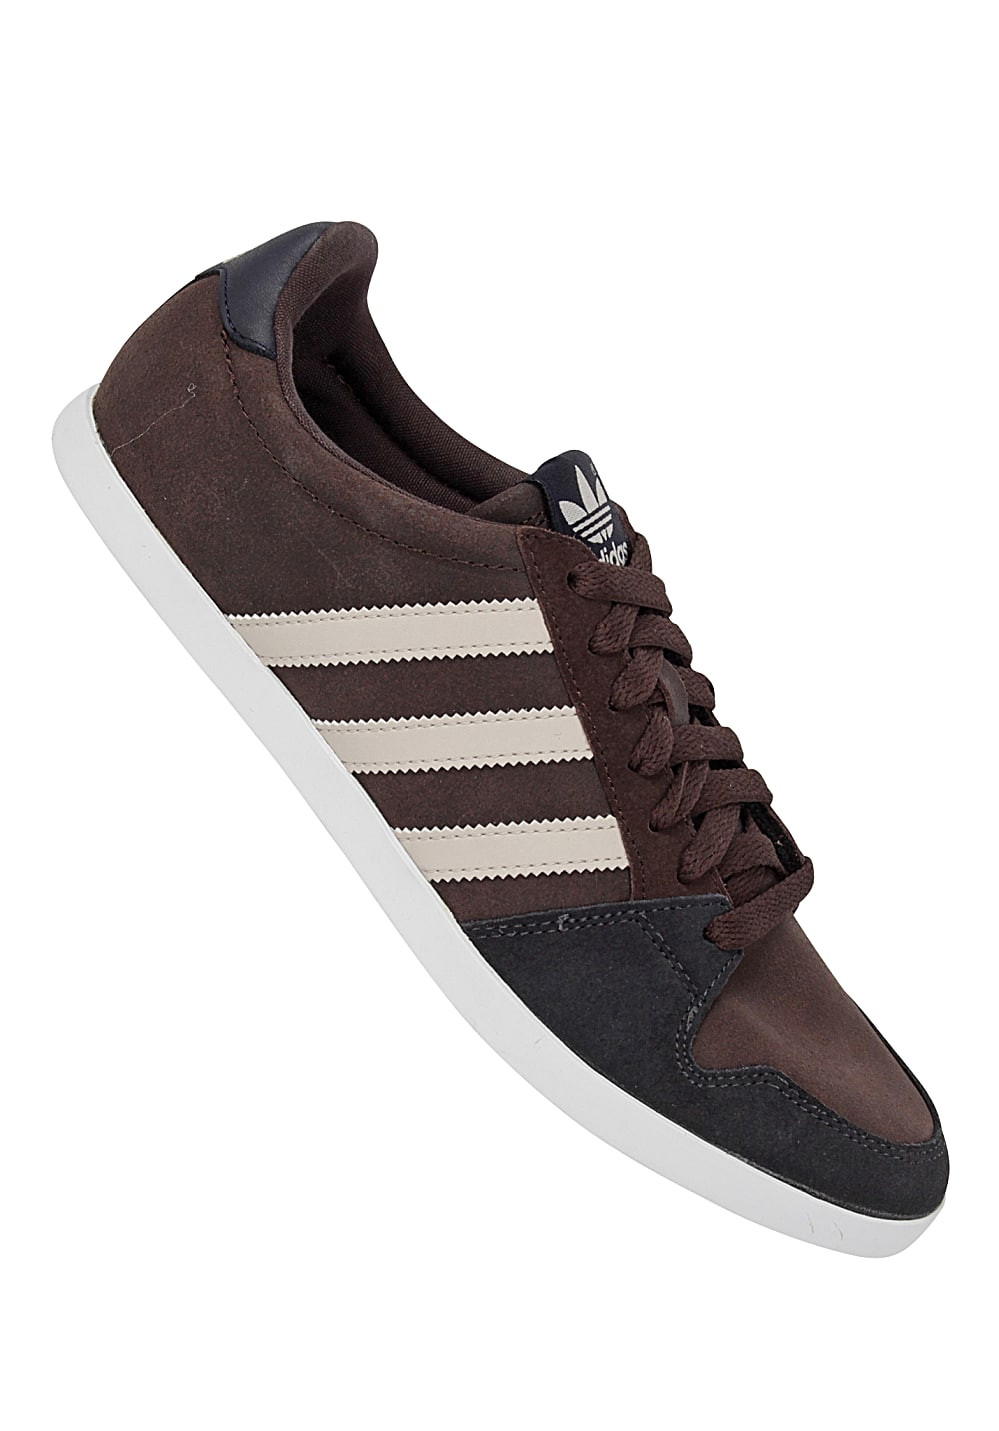 finest selection 1f0bc 4379b adidas Originals Adi Lago Low - Sneakers für Herren - Braun - Planet Sports